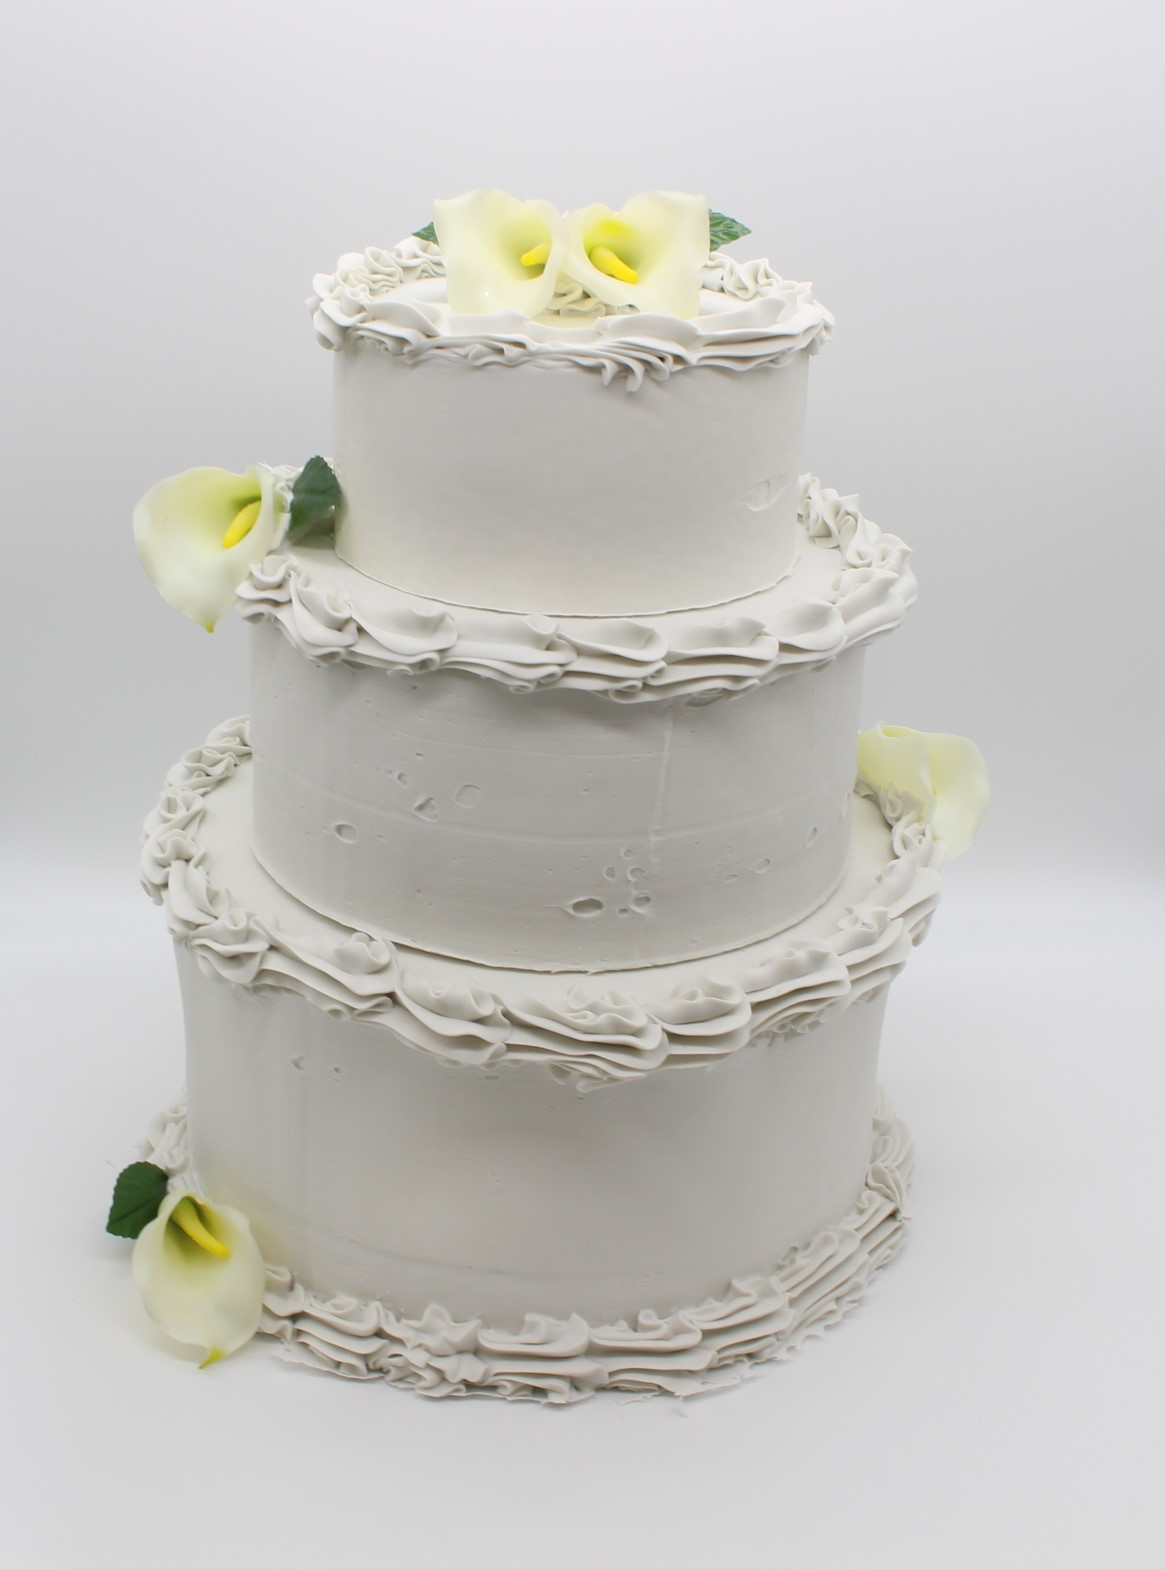 Three Tear Wedding Cakes.Fake 3 Tier Wedding Cake